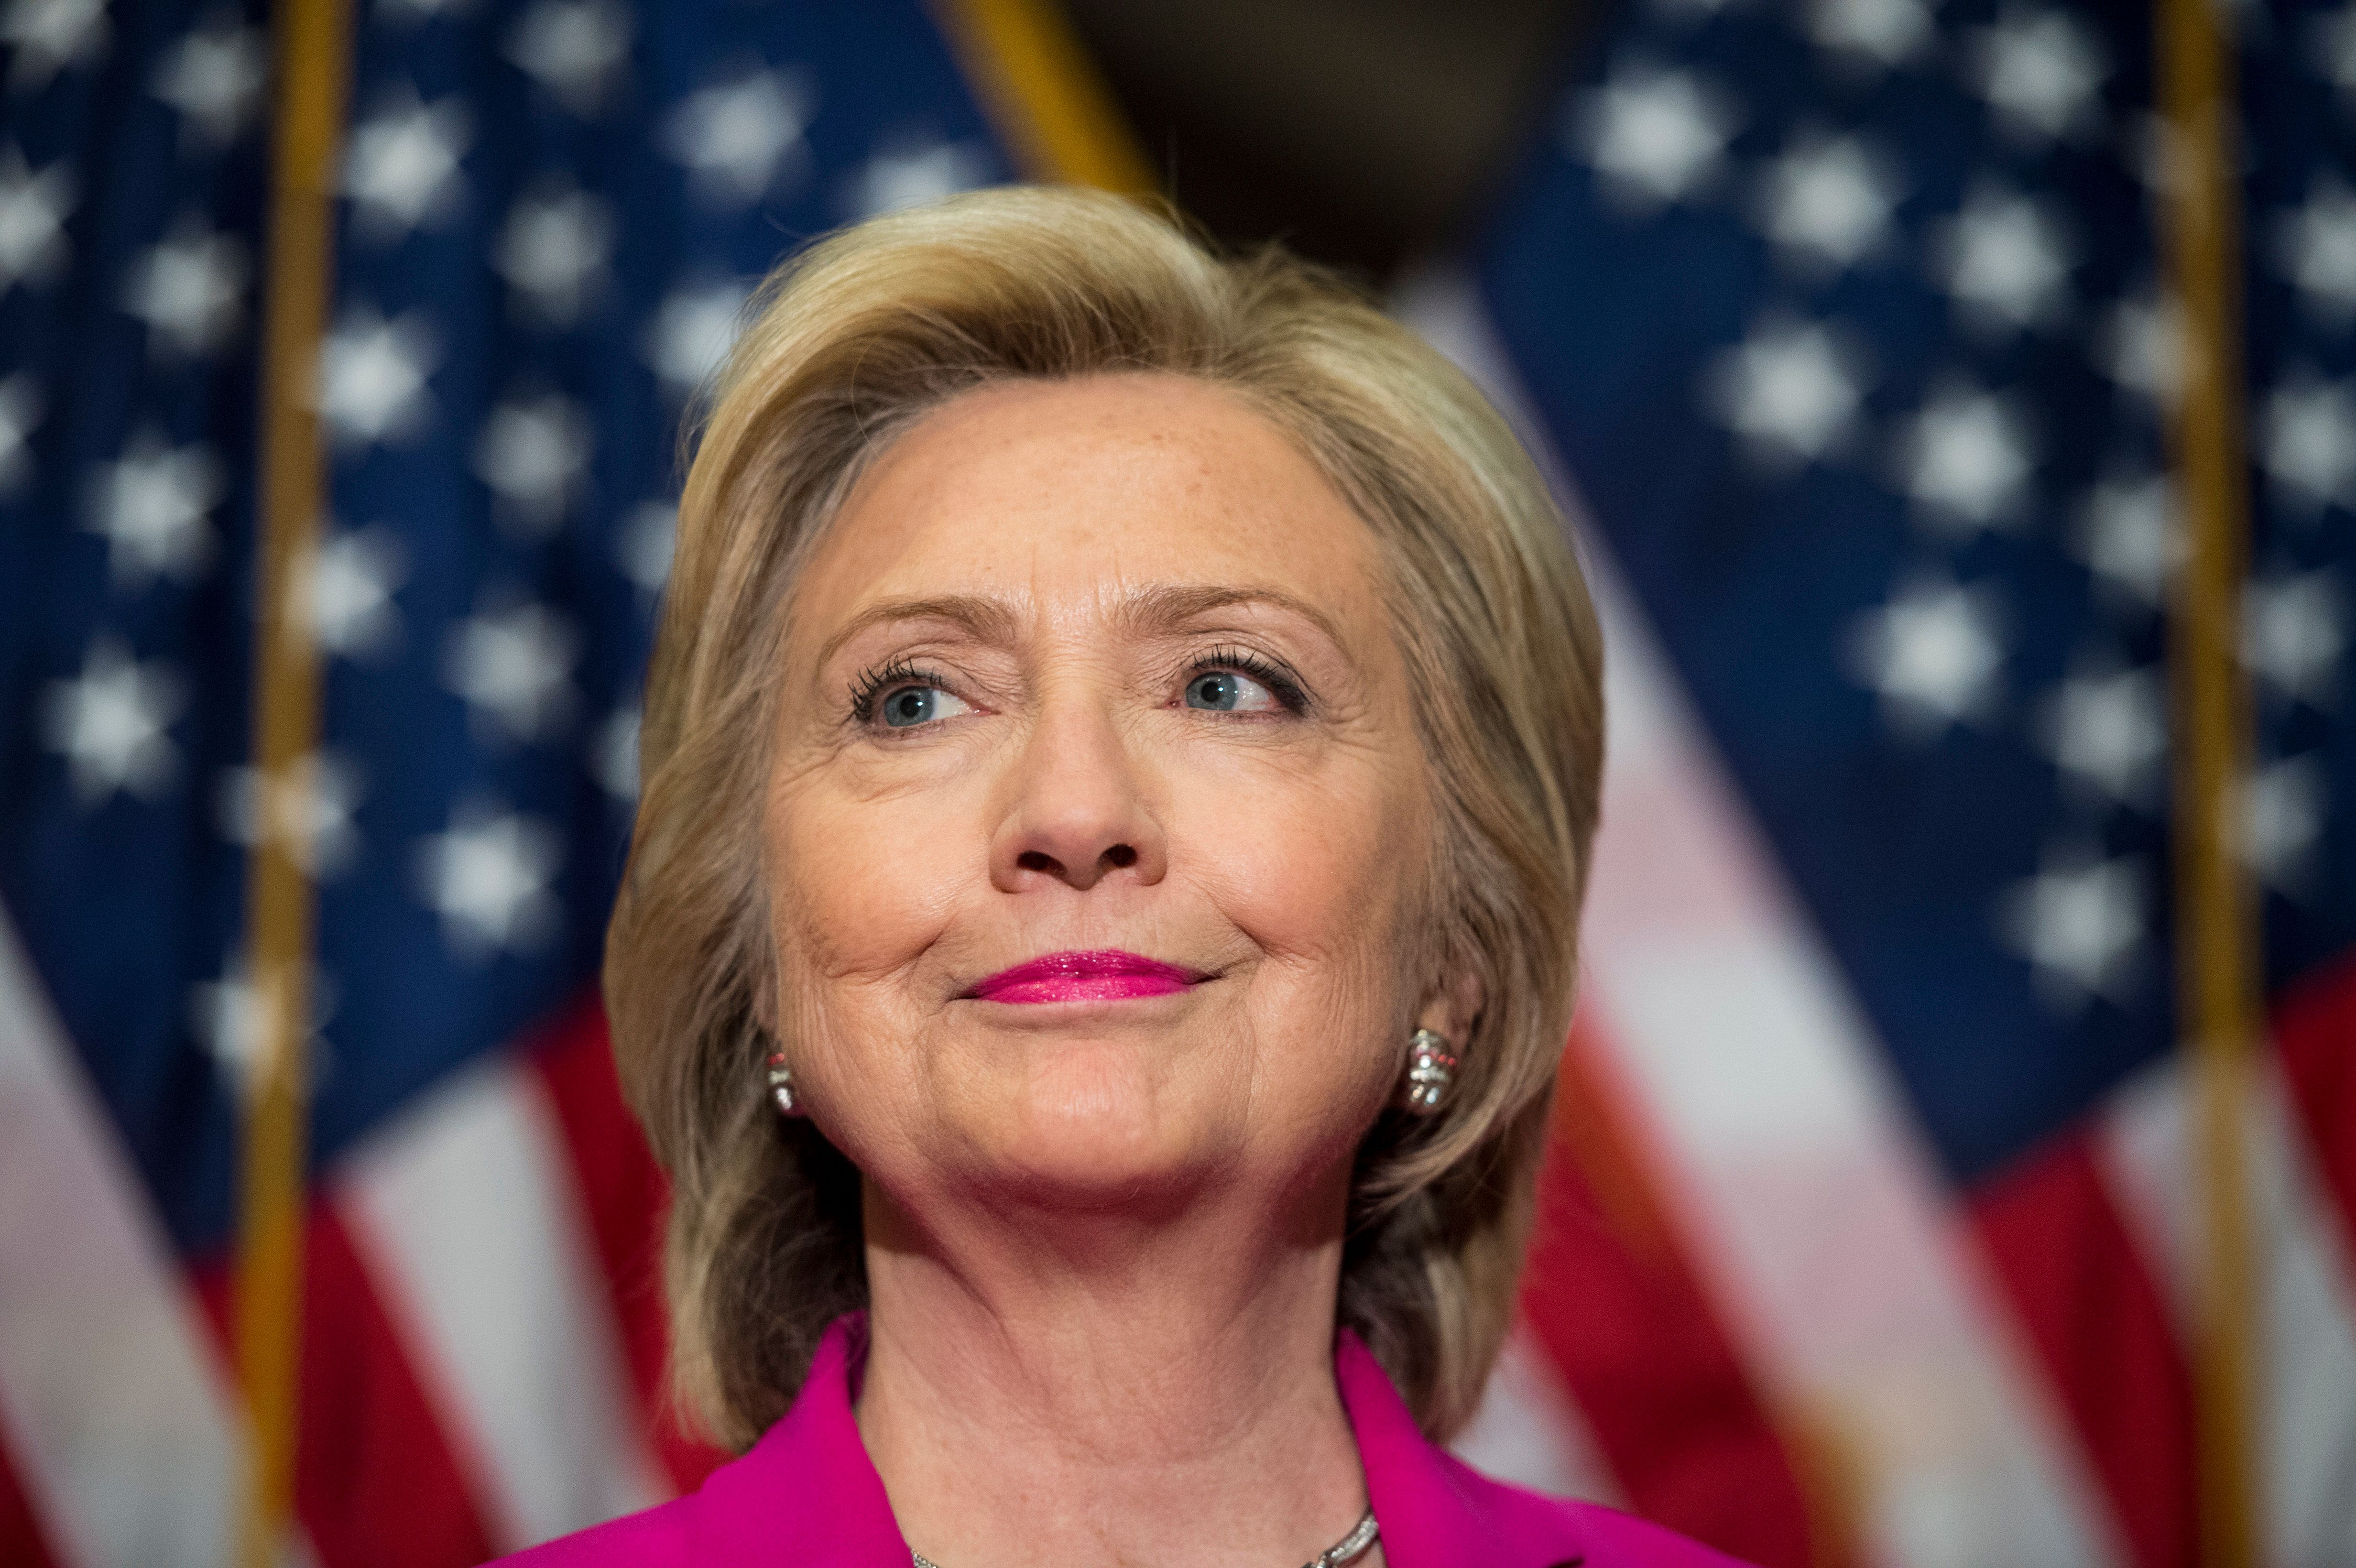 Democratic presidential candidate Hillary Clinton and Republican candidate Carly Fiorina are both vying...